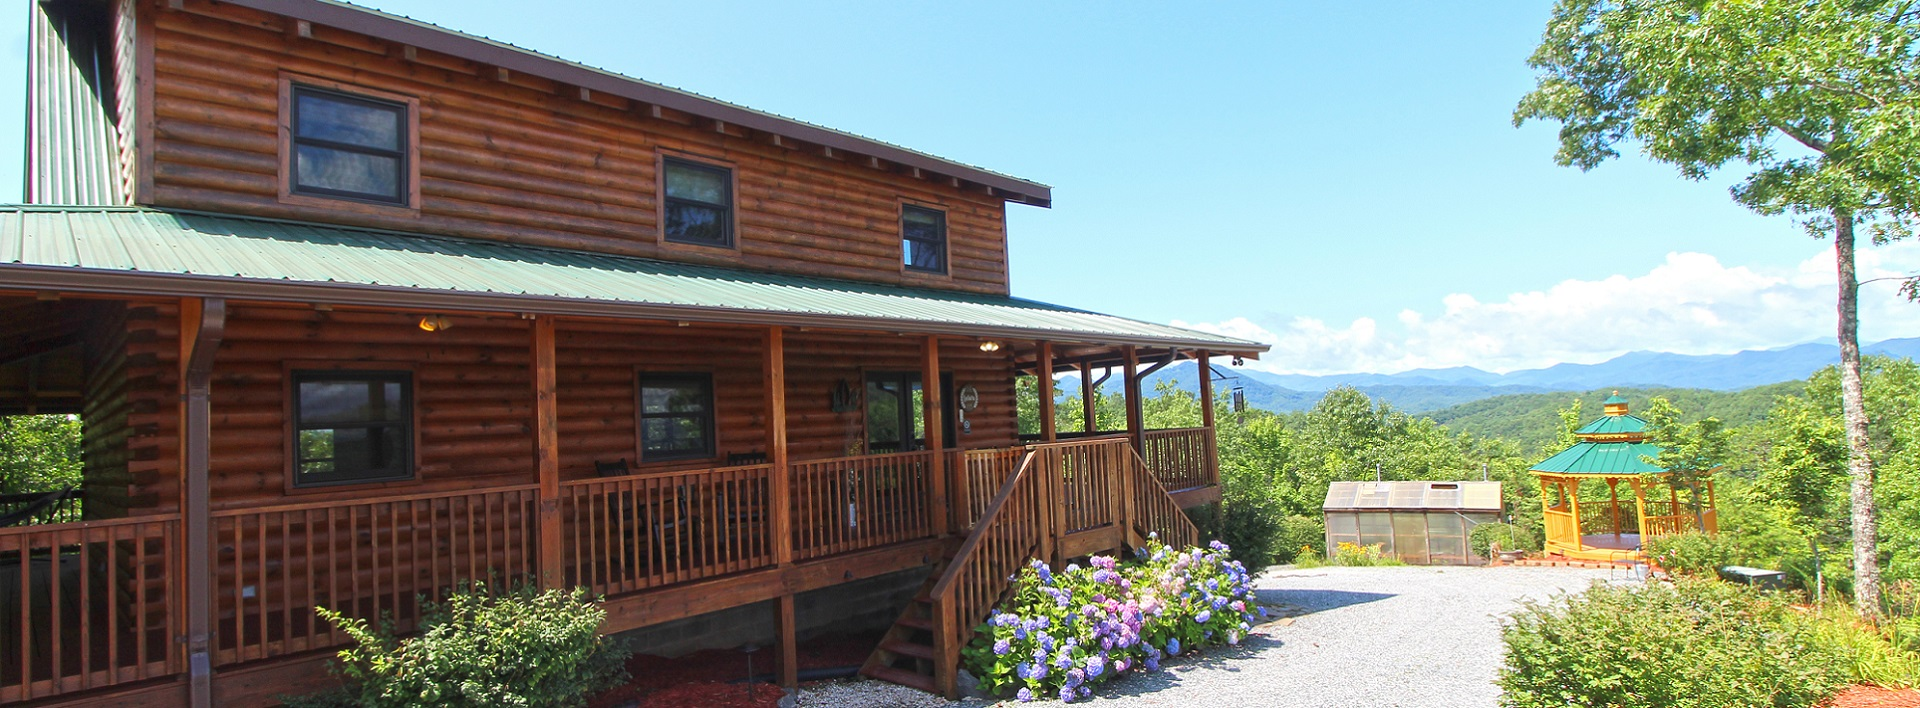 friendly smoky townsend in secluded cabin cabins pet great rentals mountains tn rental ny tennessee river